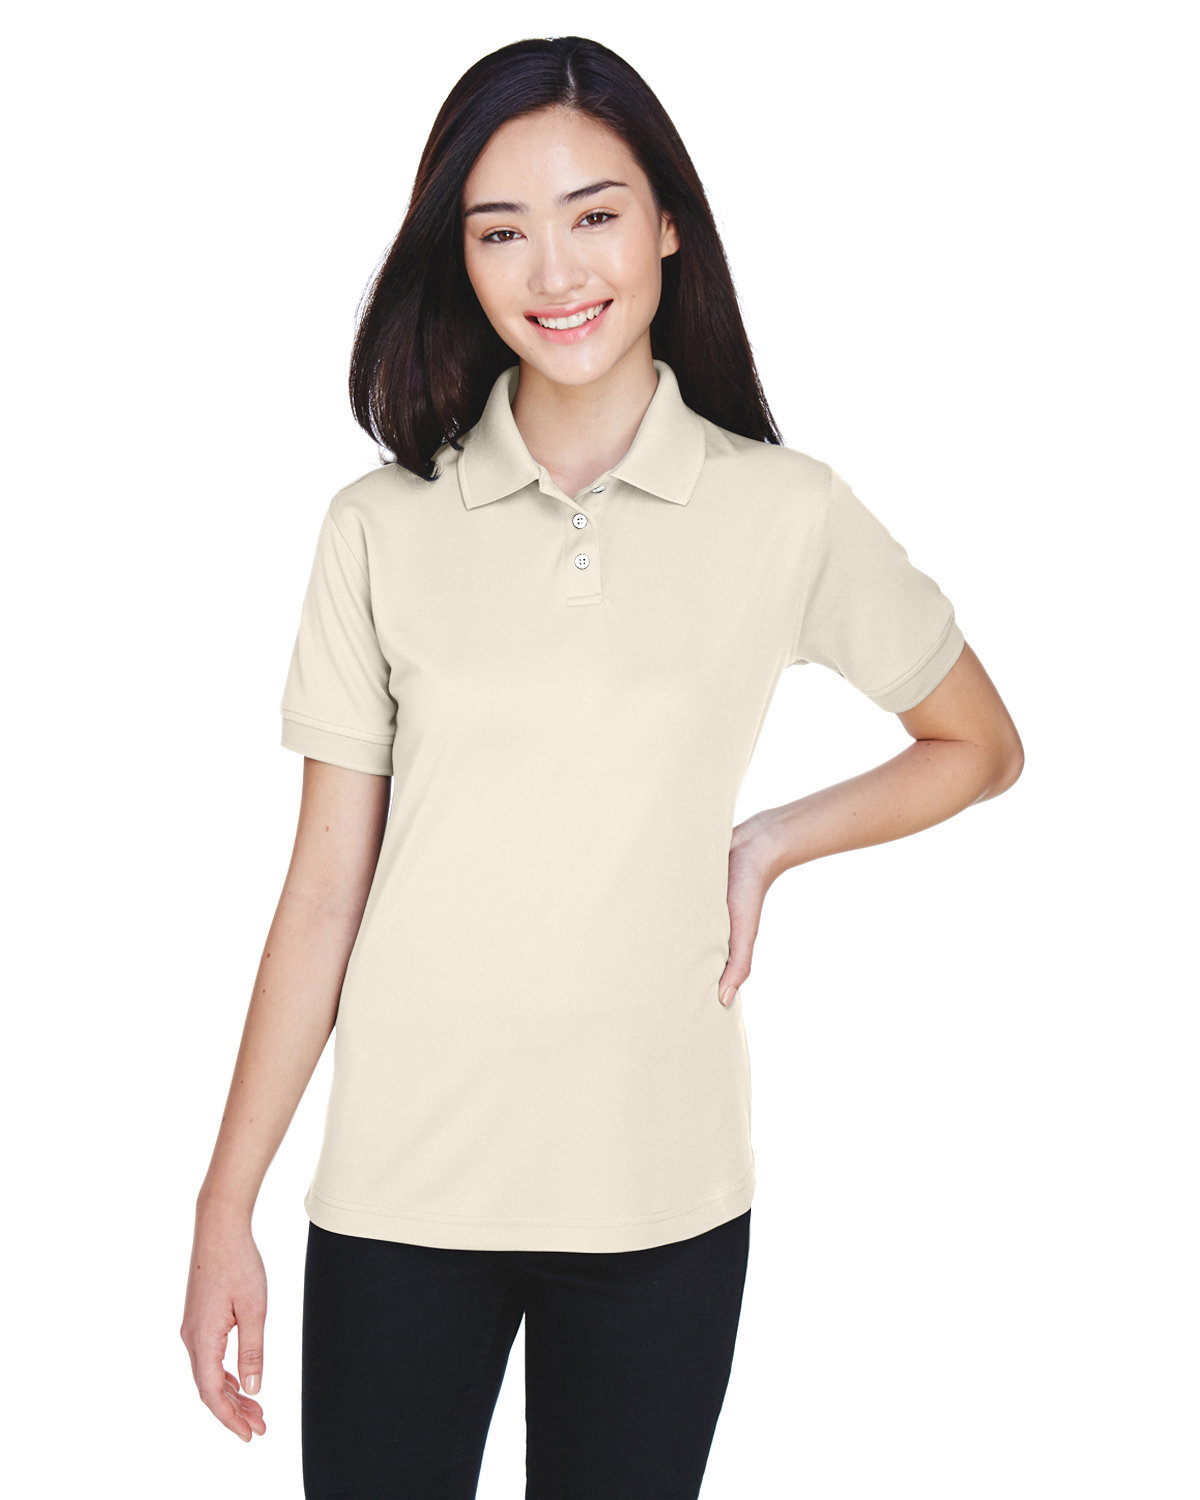 UltraClub Ladies' Platinum Performance Piqué Polo with TempControl Technology STONE